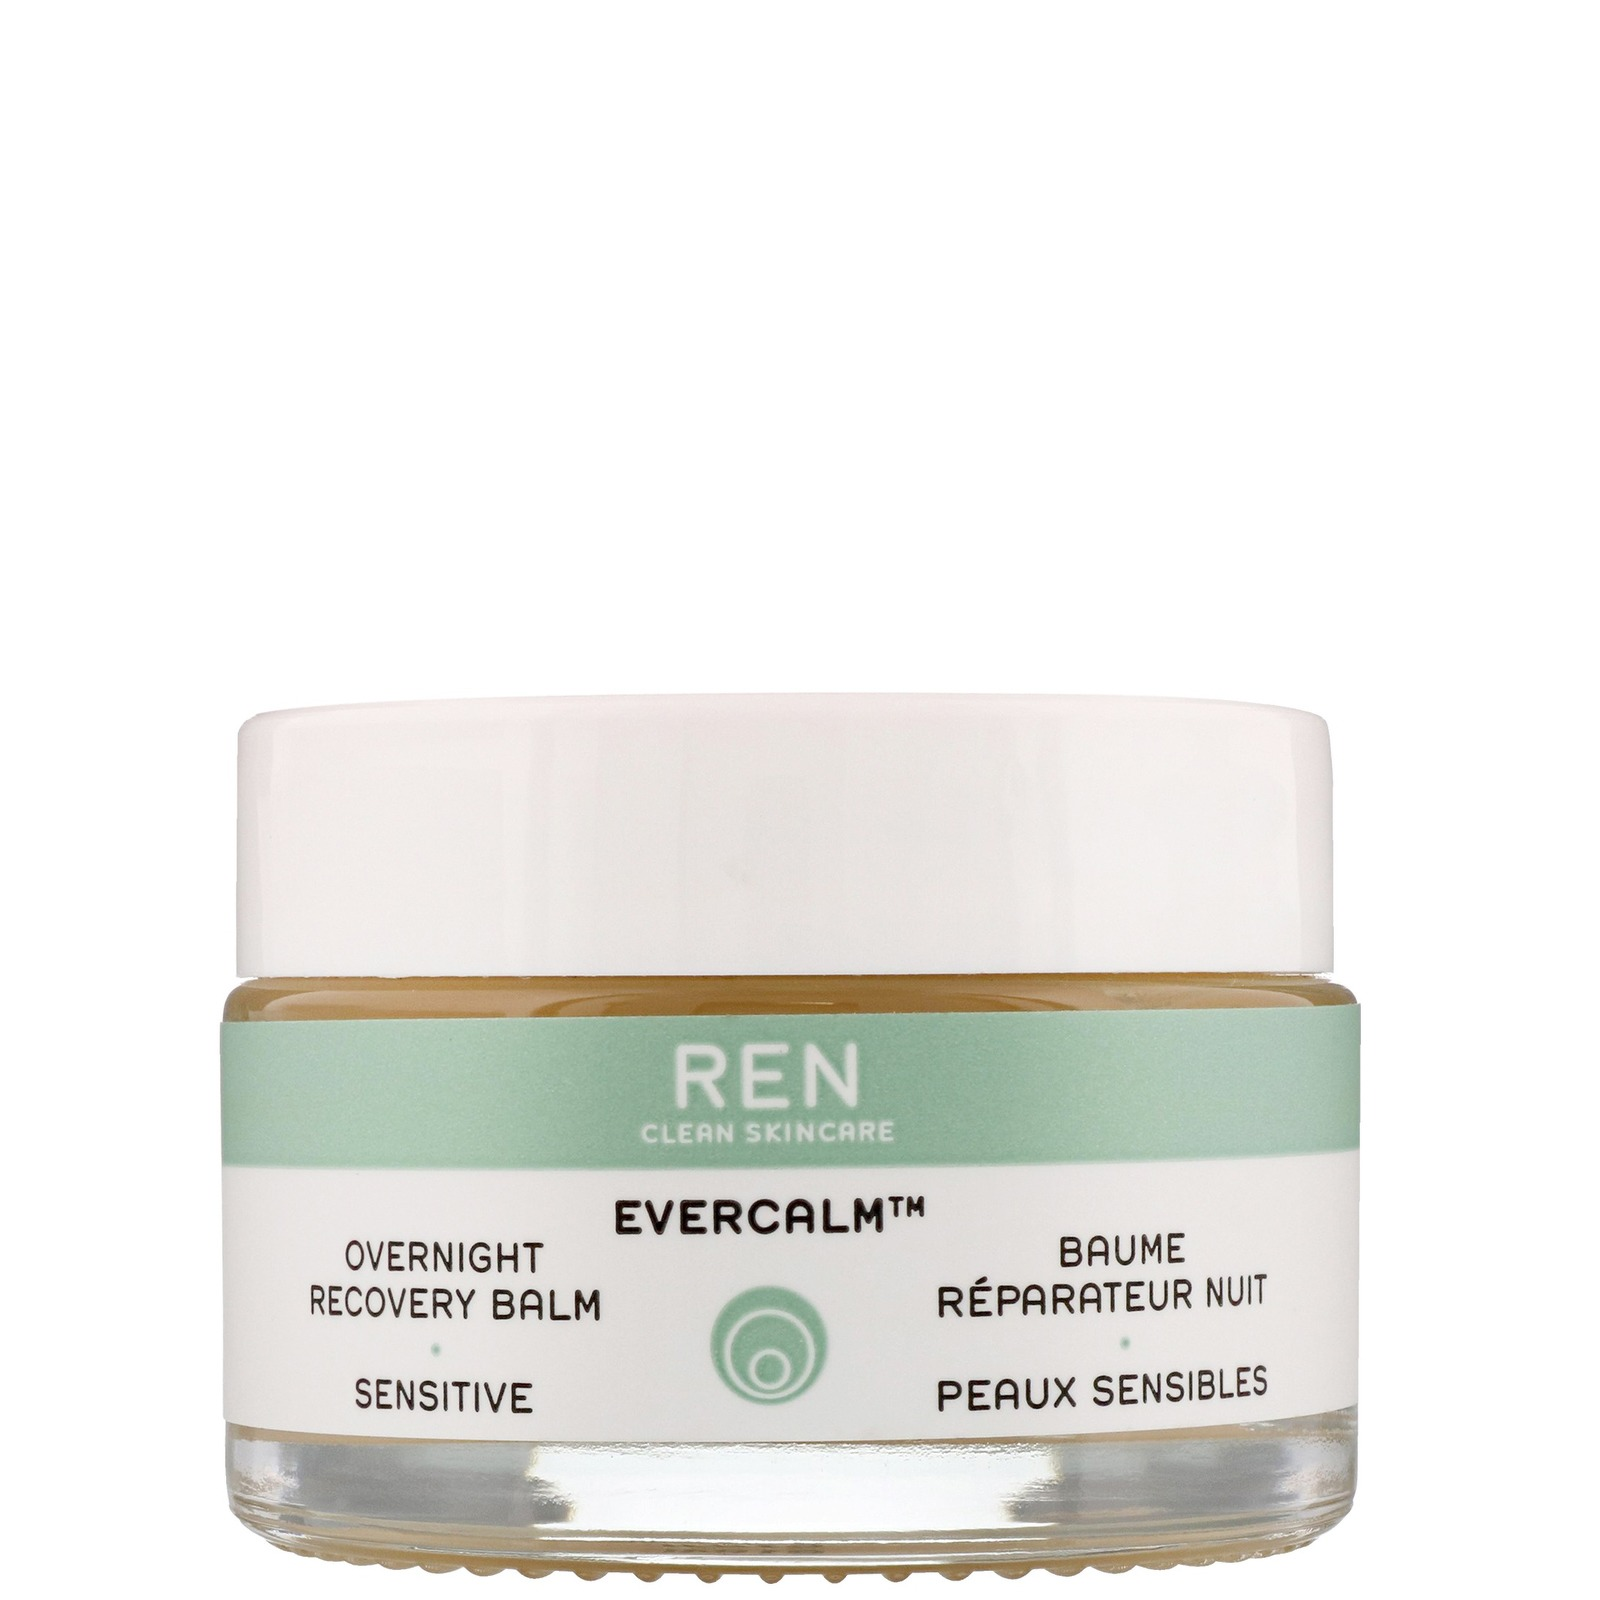 REN Clean Skincare Face Evercalm Overnight Recovery Balm 30ml / 1.02 fl.oz.